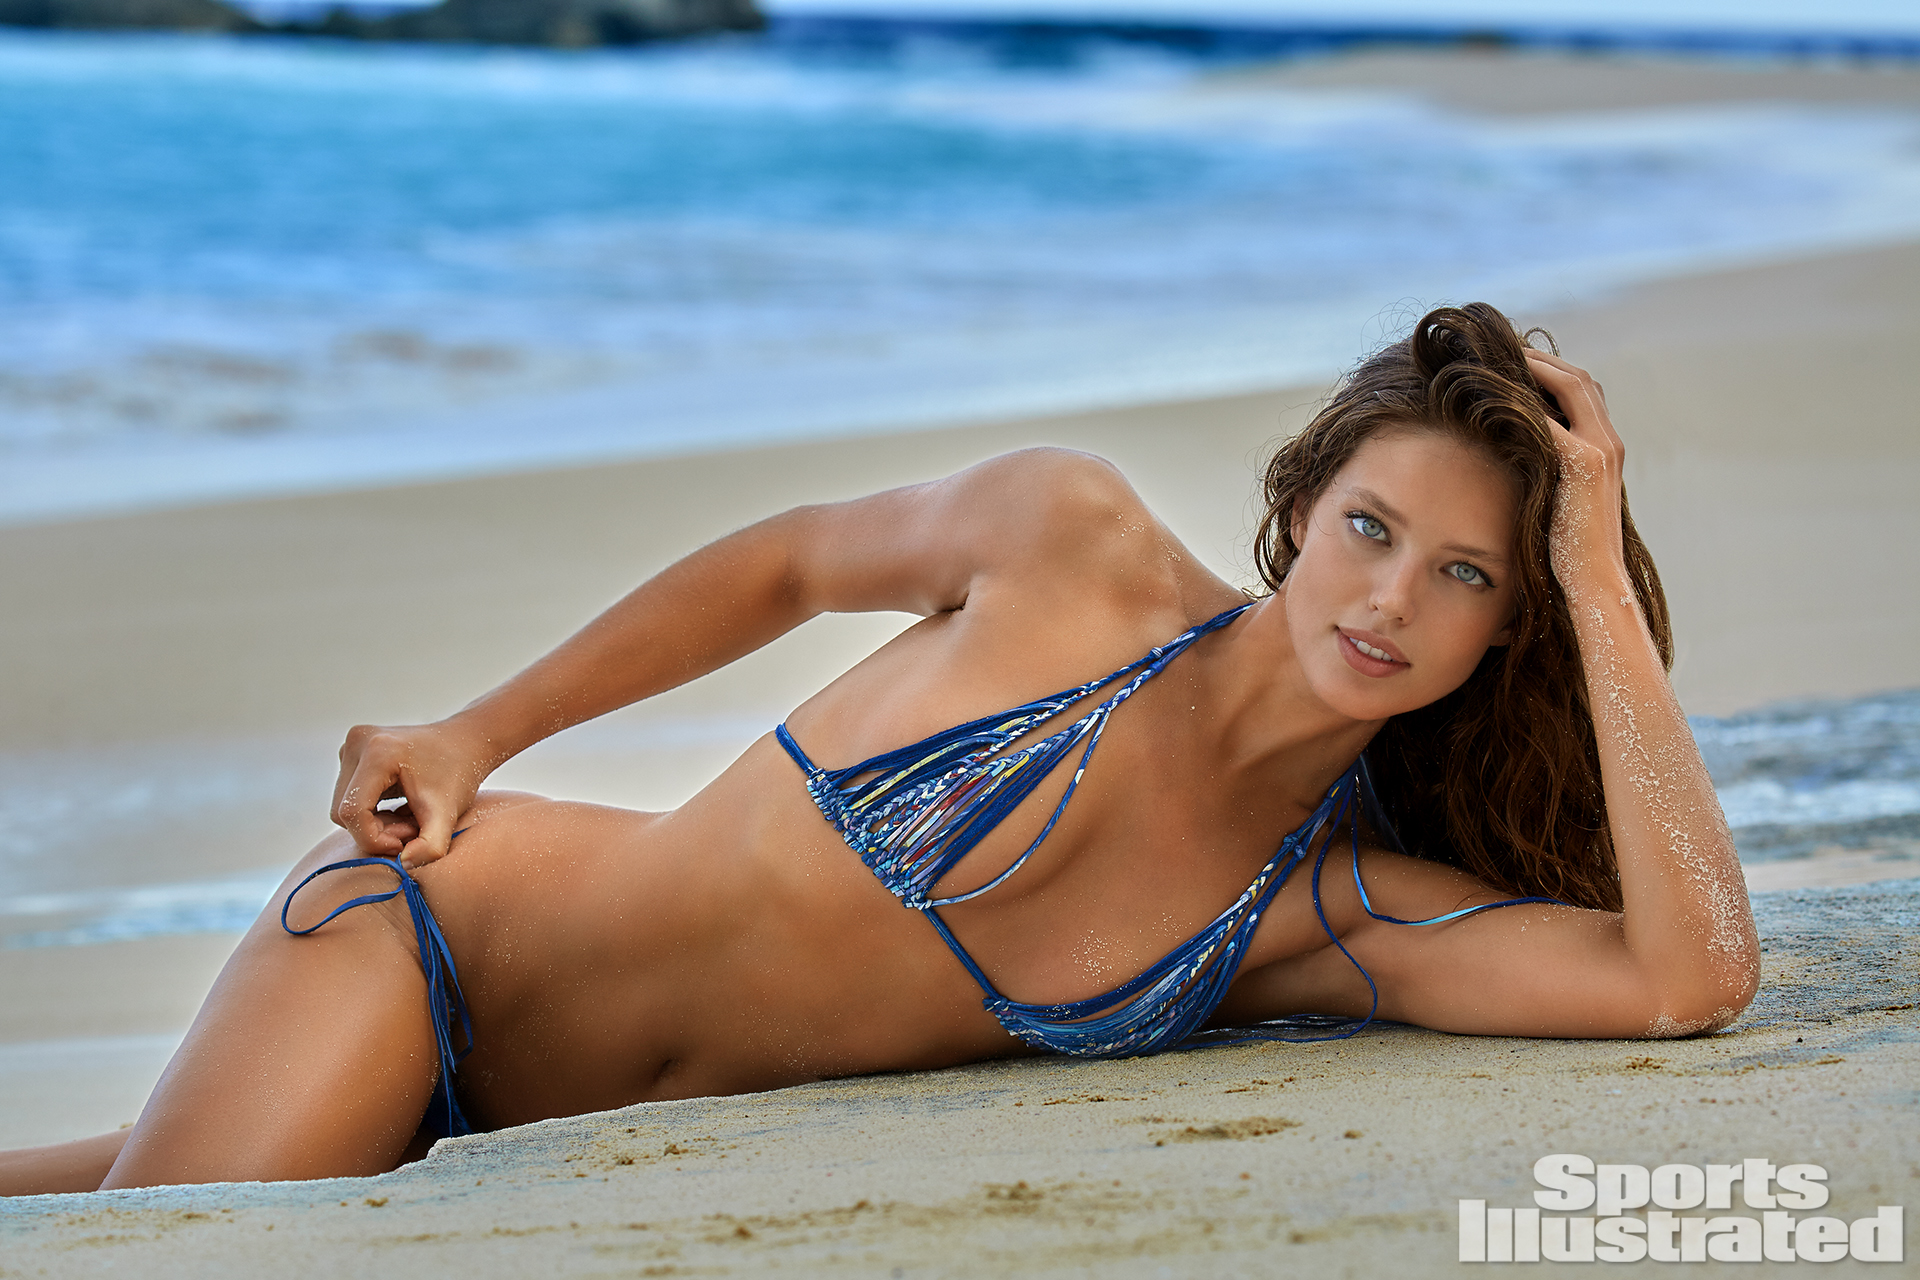 Emily DiDonato was photographed by James Macari in Turks & Caicos. Swimsuit by Lost Art By Jordan Betten.